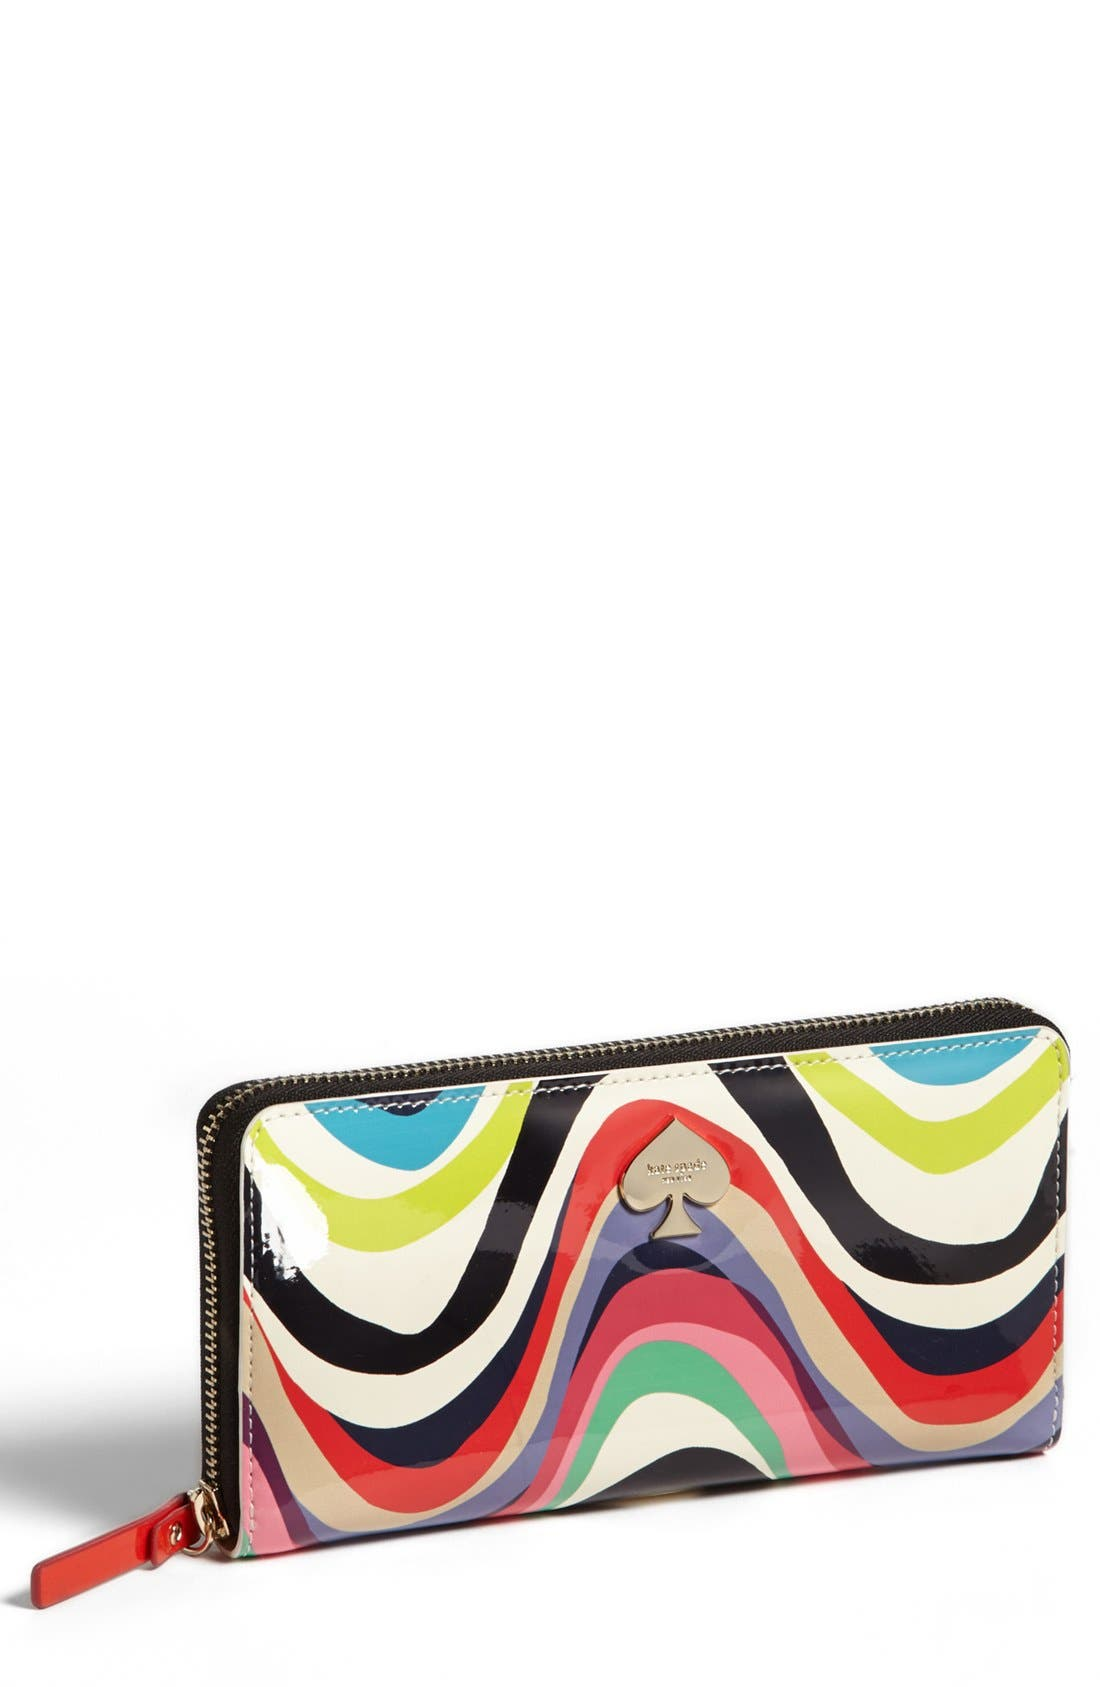 Main Image - kate spade new york 'lacey - large' zip around wallet